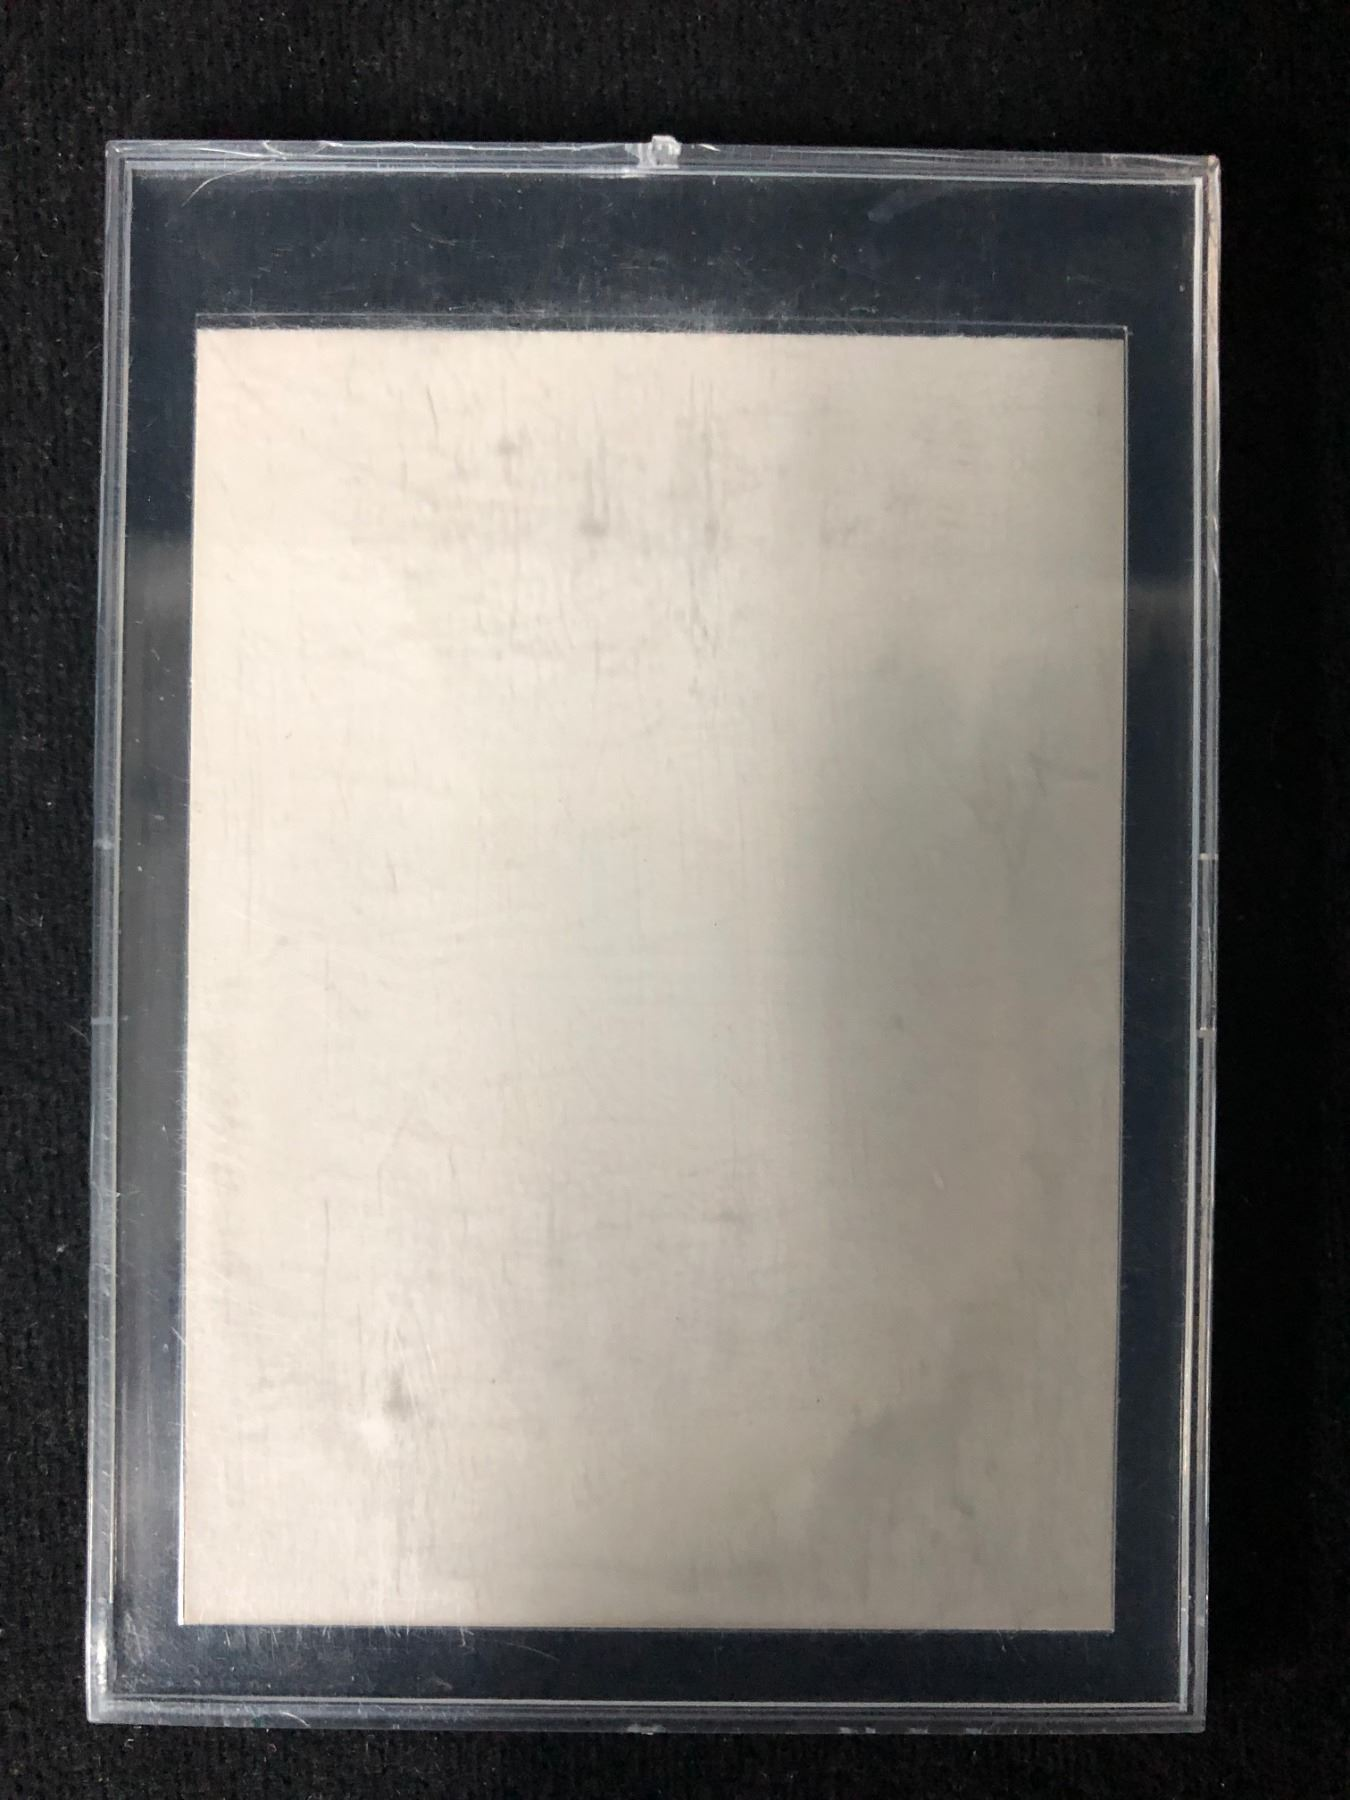 1989 Pro Set Rookie Of The Year Barry Sanders Rare Error Card Blank Back